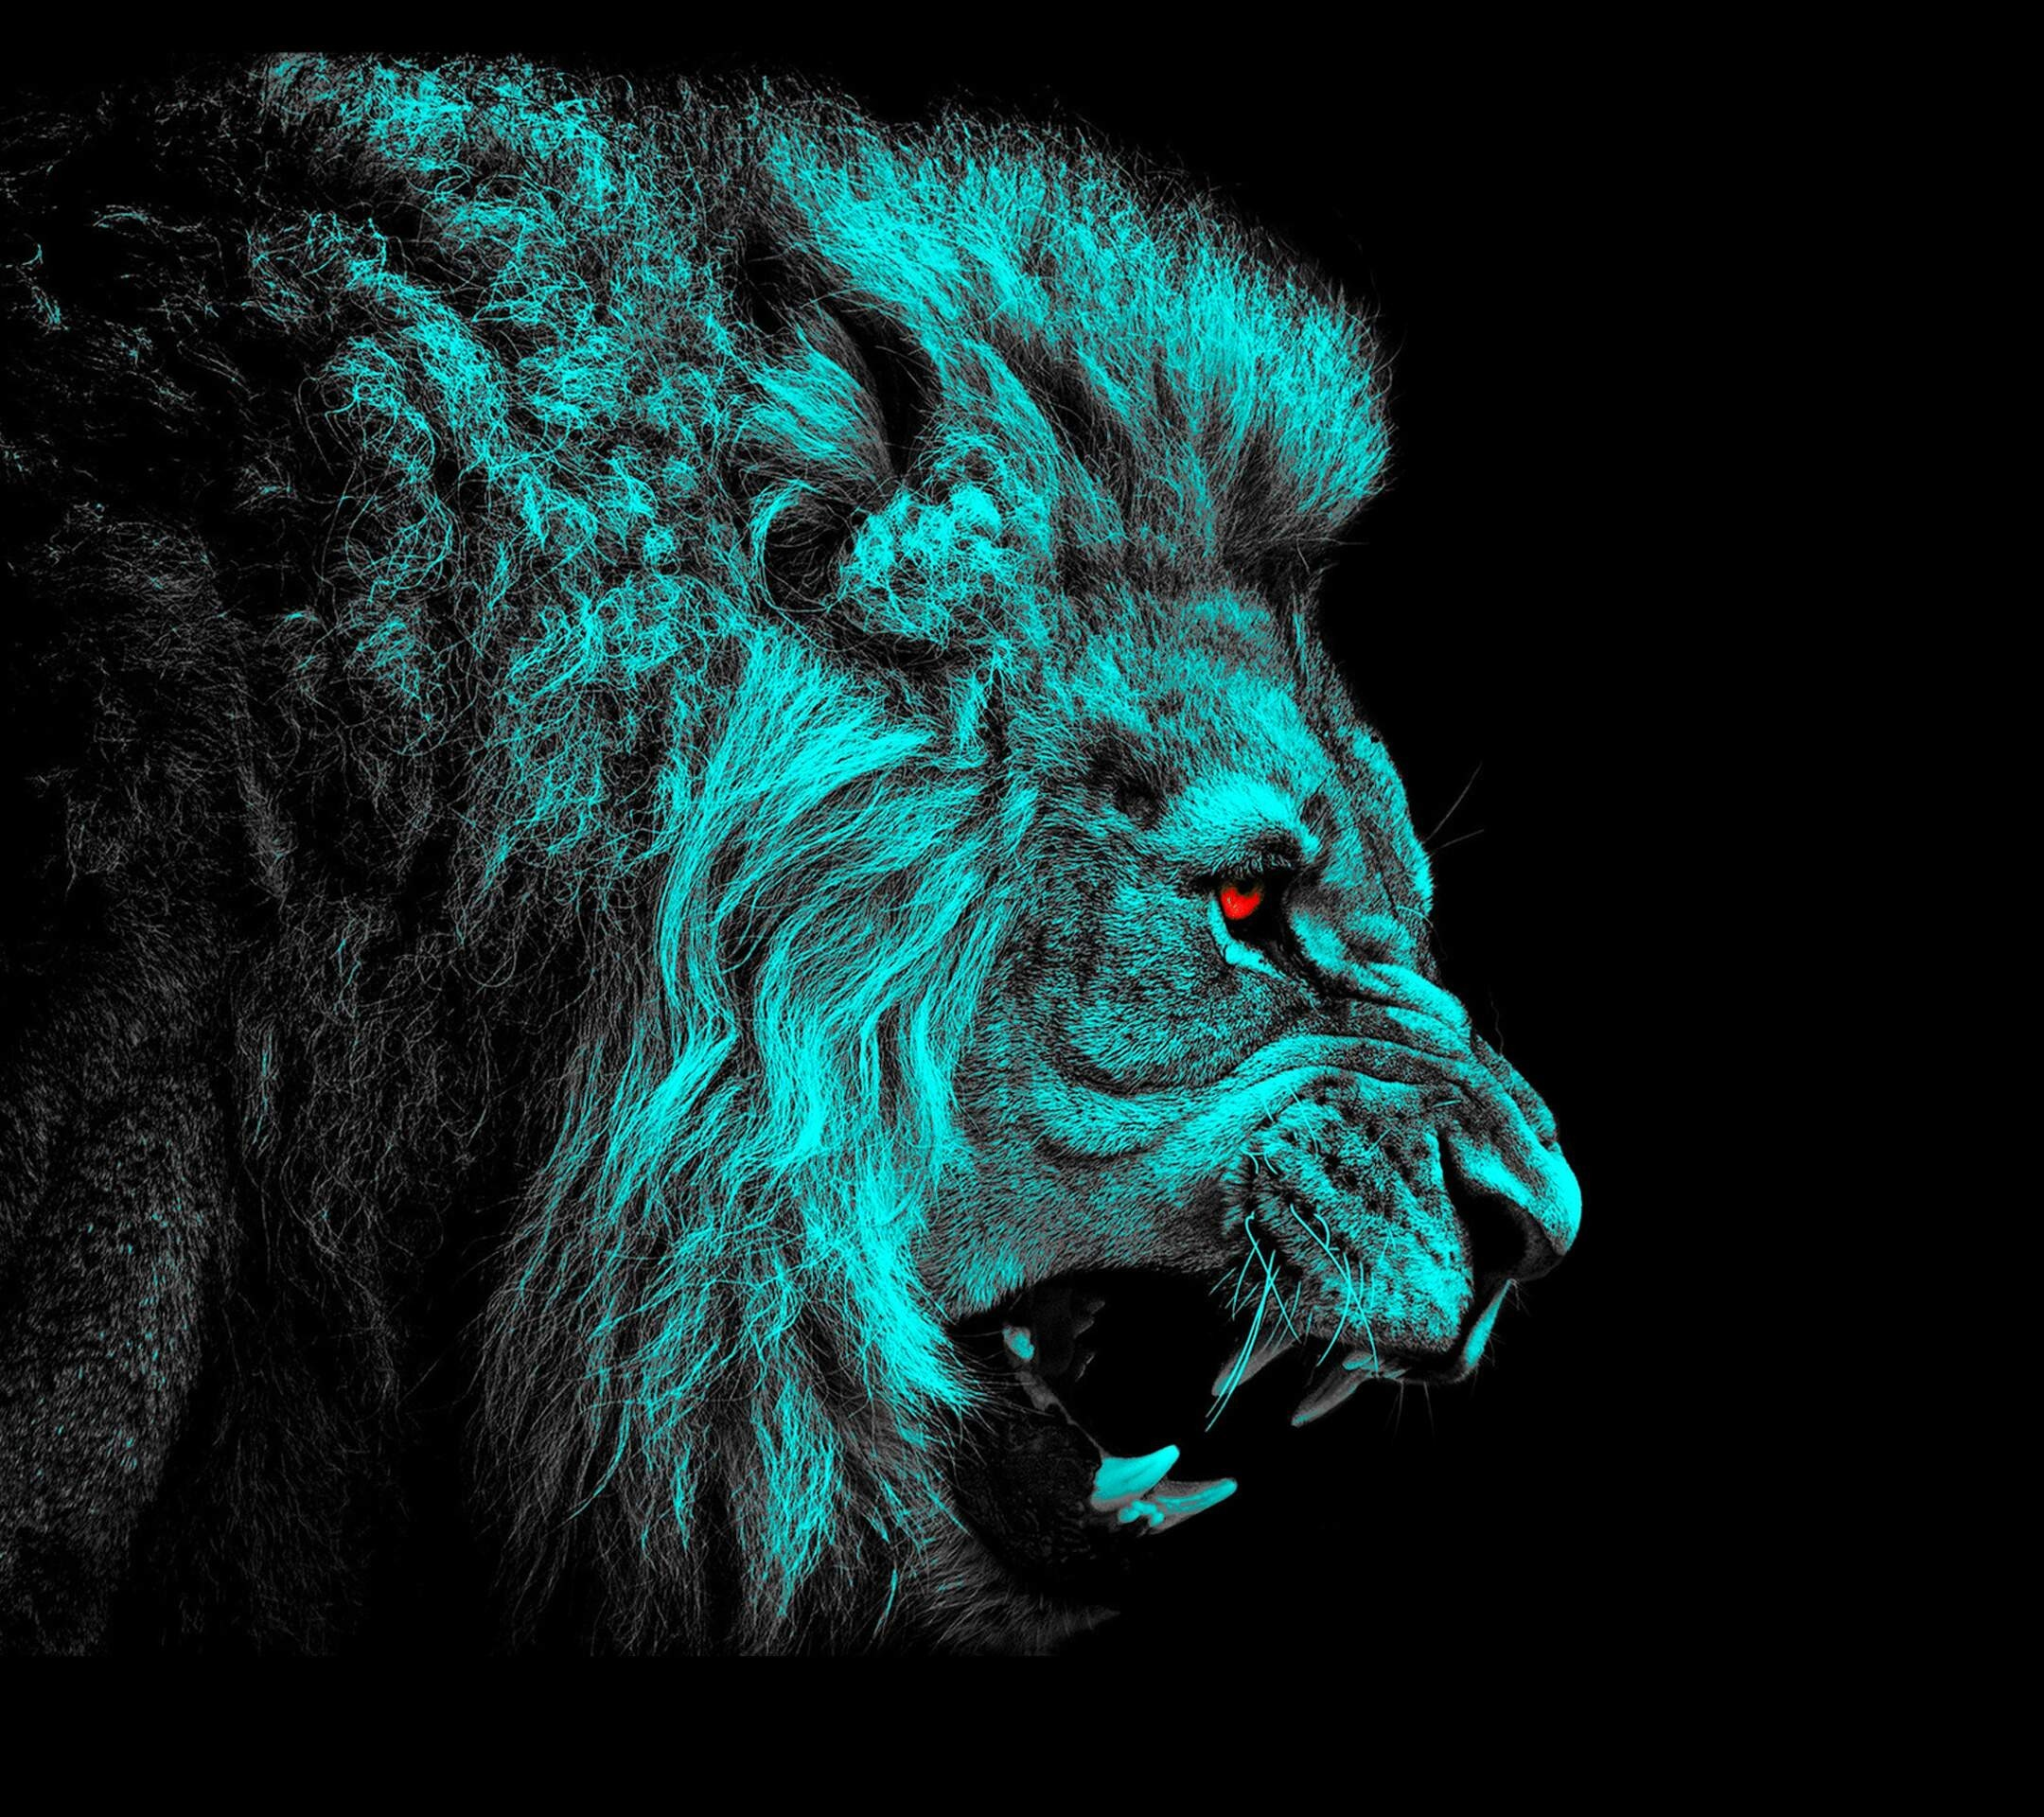 HD desktop background lion – 903 Lion Hd Wallpapers Backgrounds Wallpaper  Ass in HD desktop background